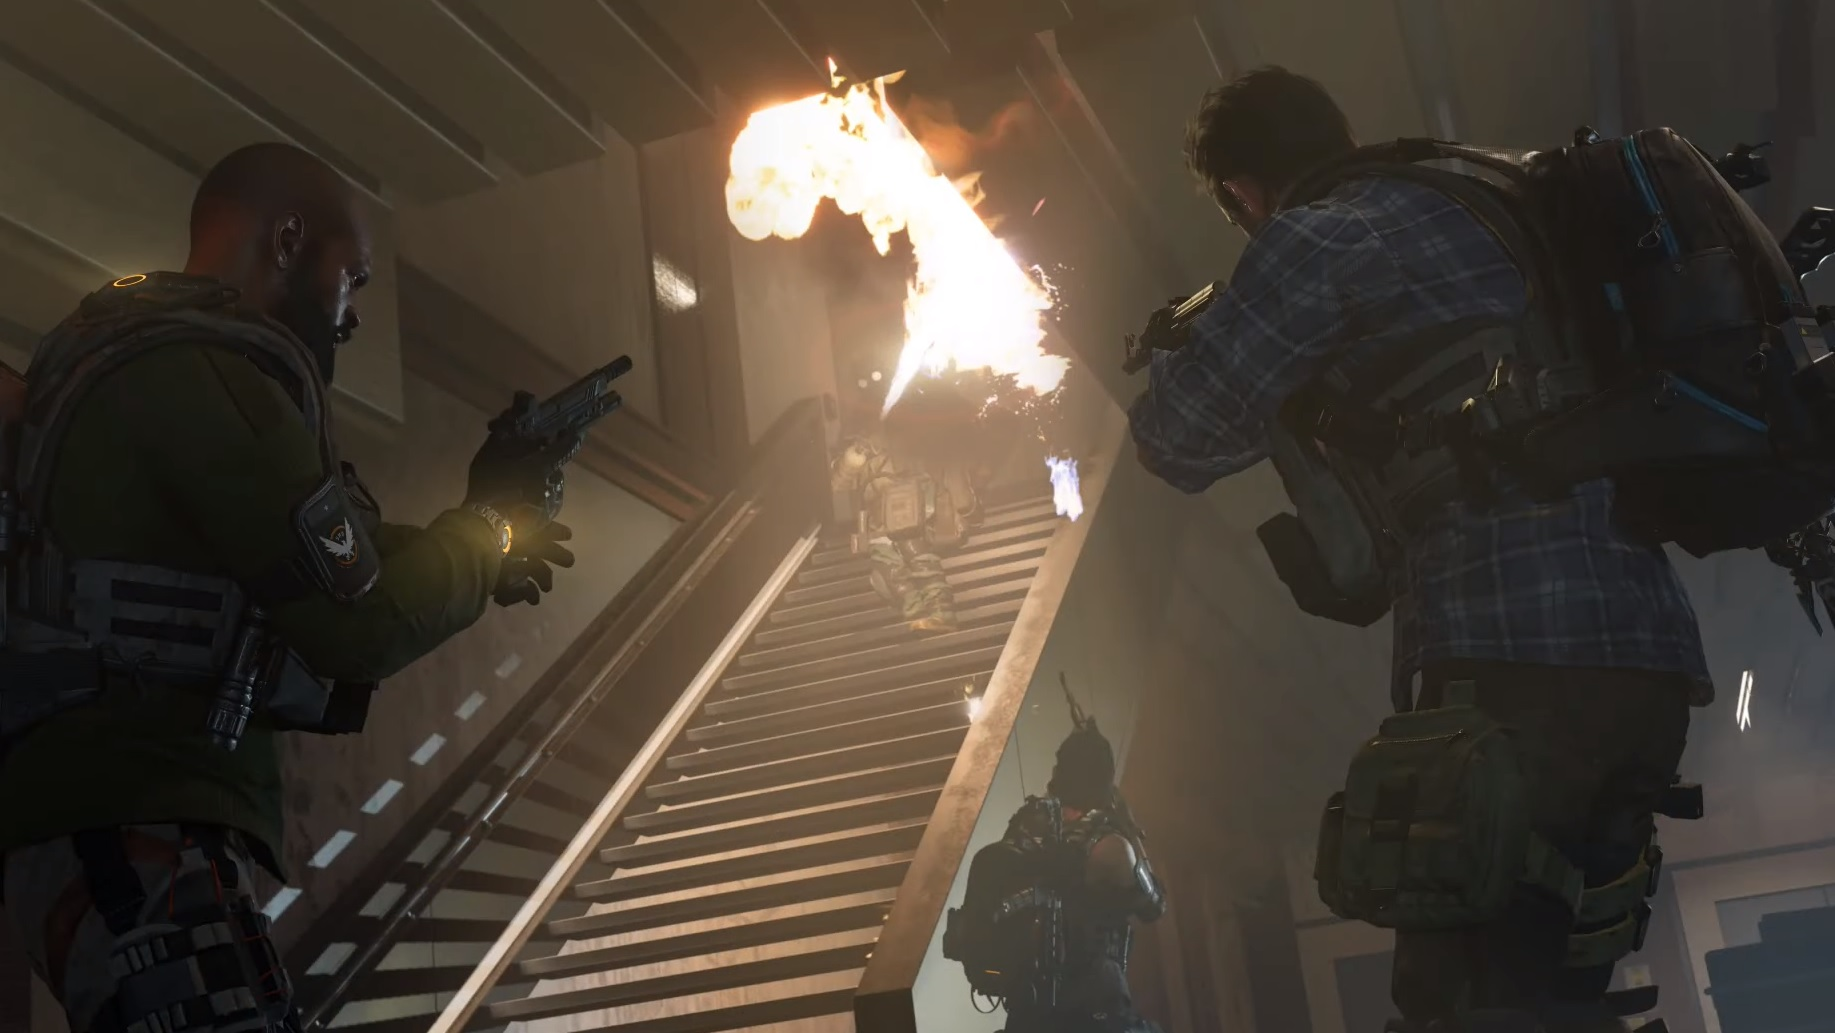 The Division 2's new mode sounds like The Raid but in a 100-story skyscraper